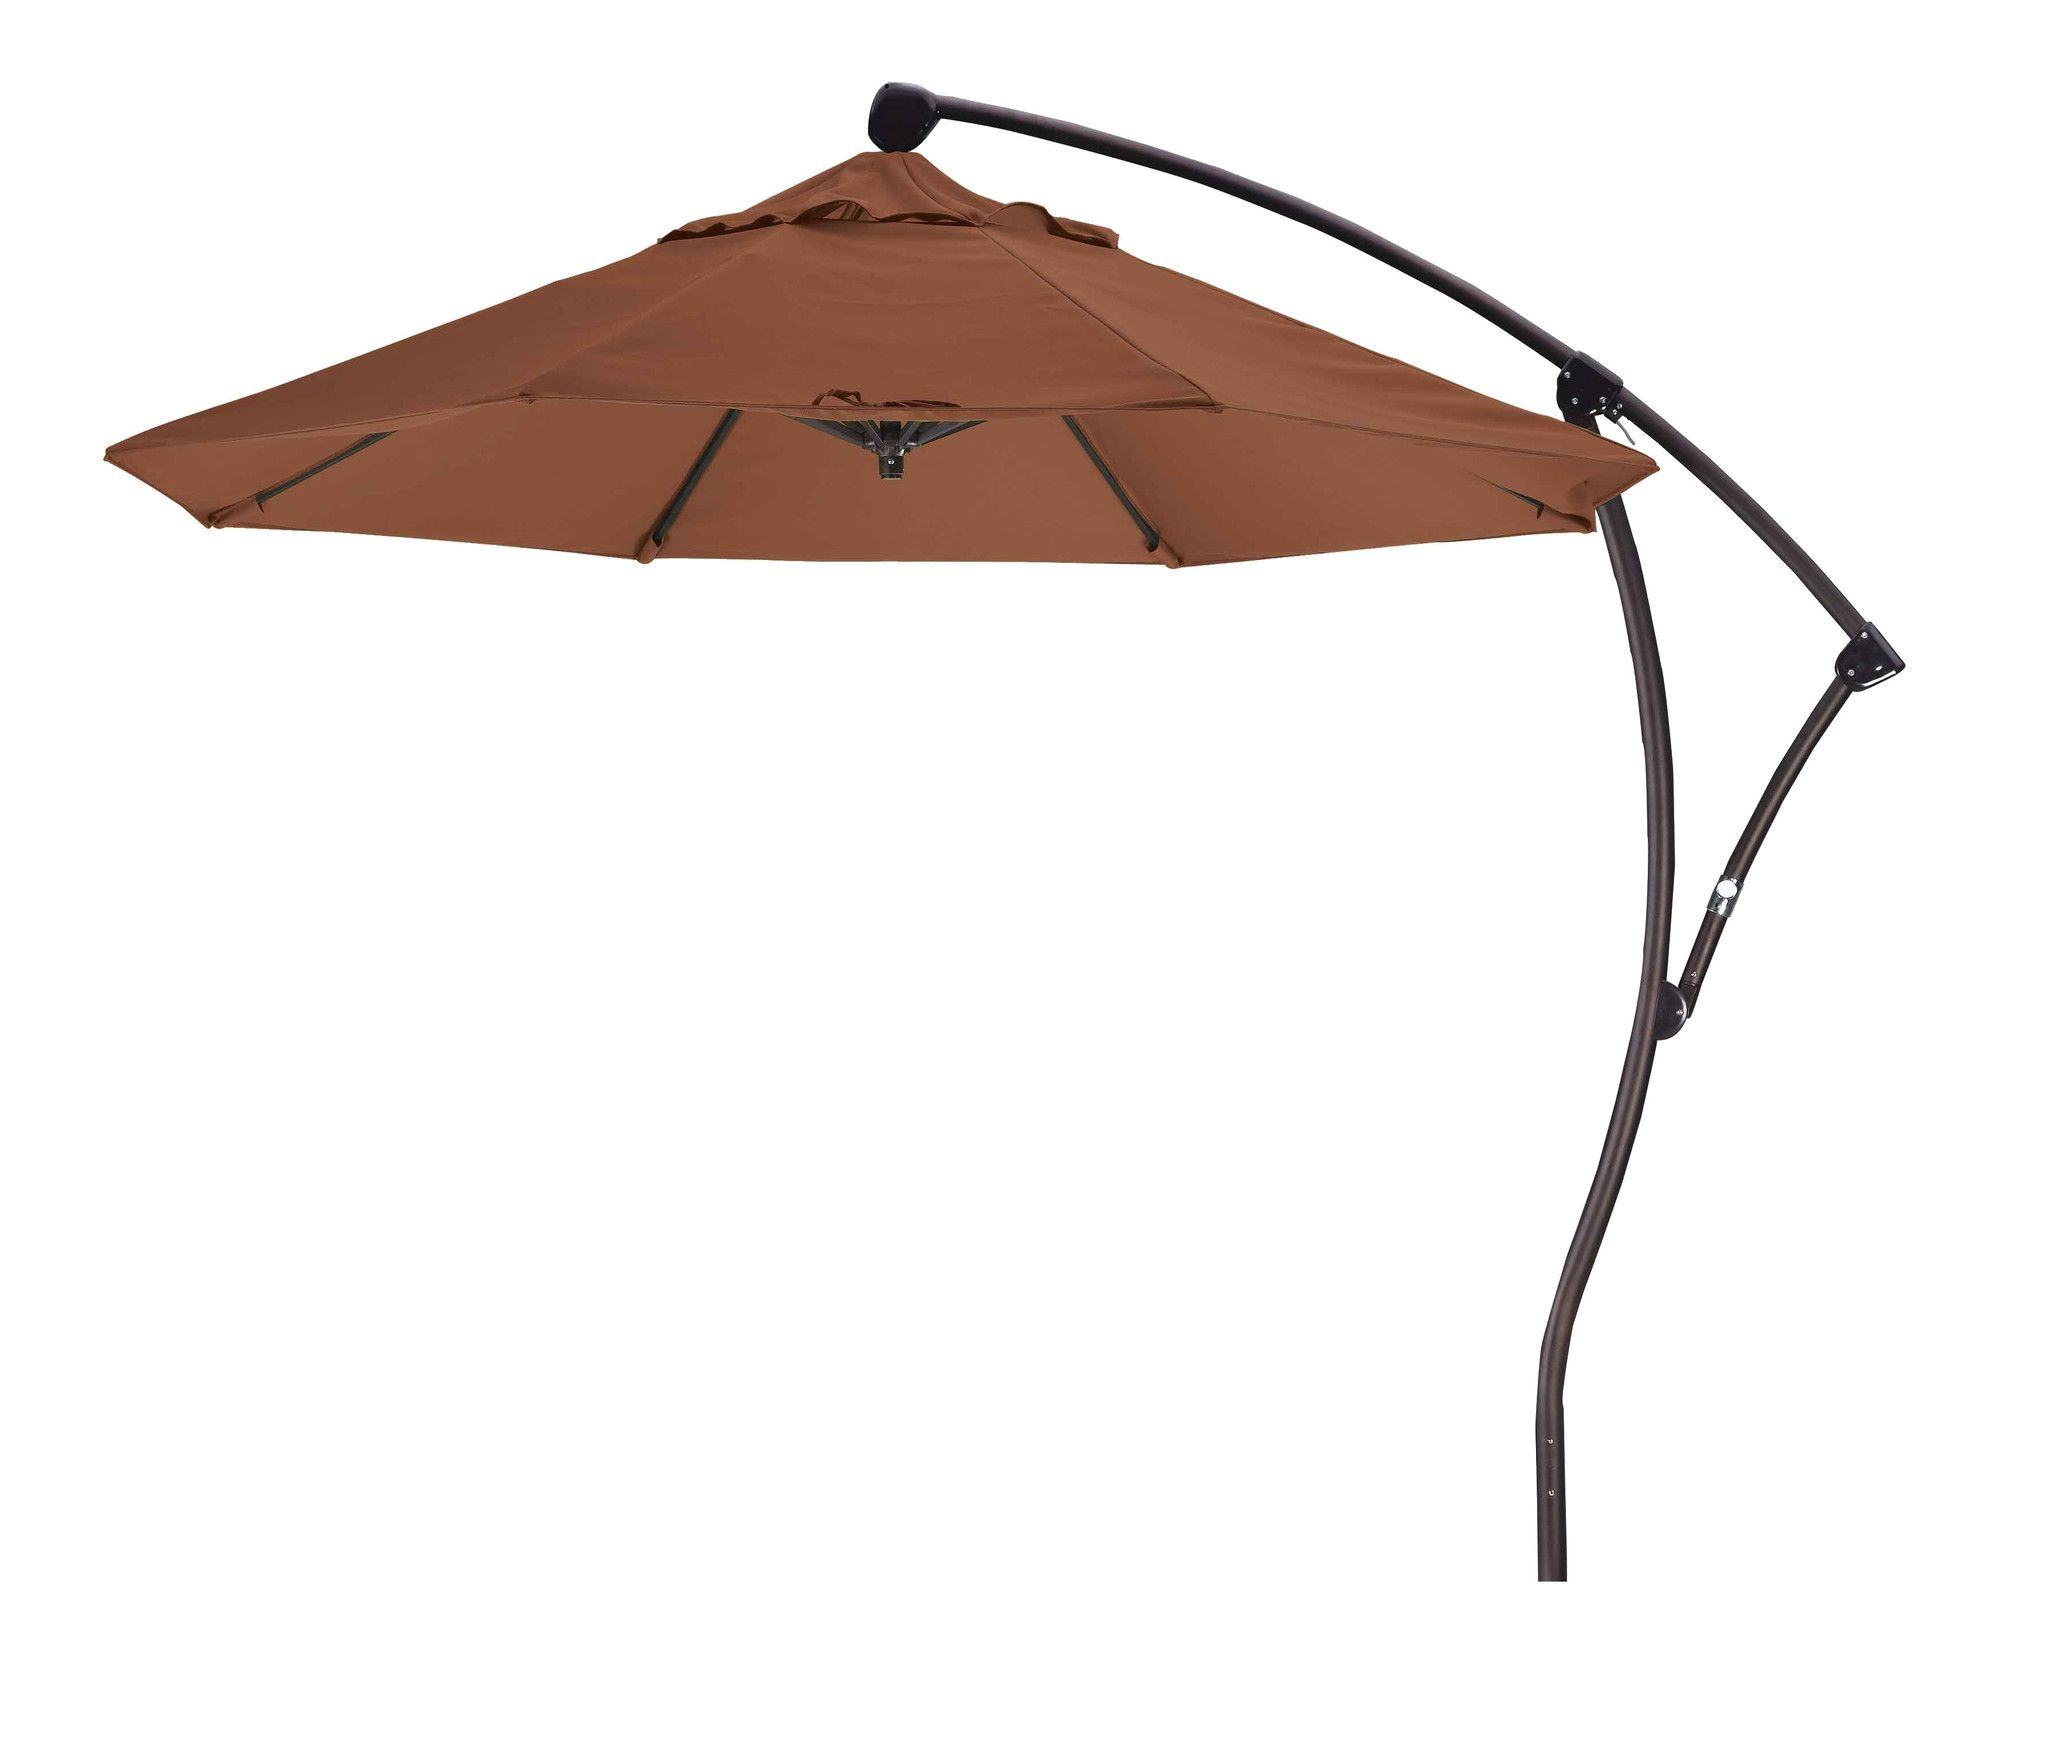 this 9 foot round cantilever umbrella offers wide sun protection on your patio this outdoor umbrella is made from stainless steel and features sunbrella